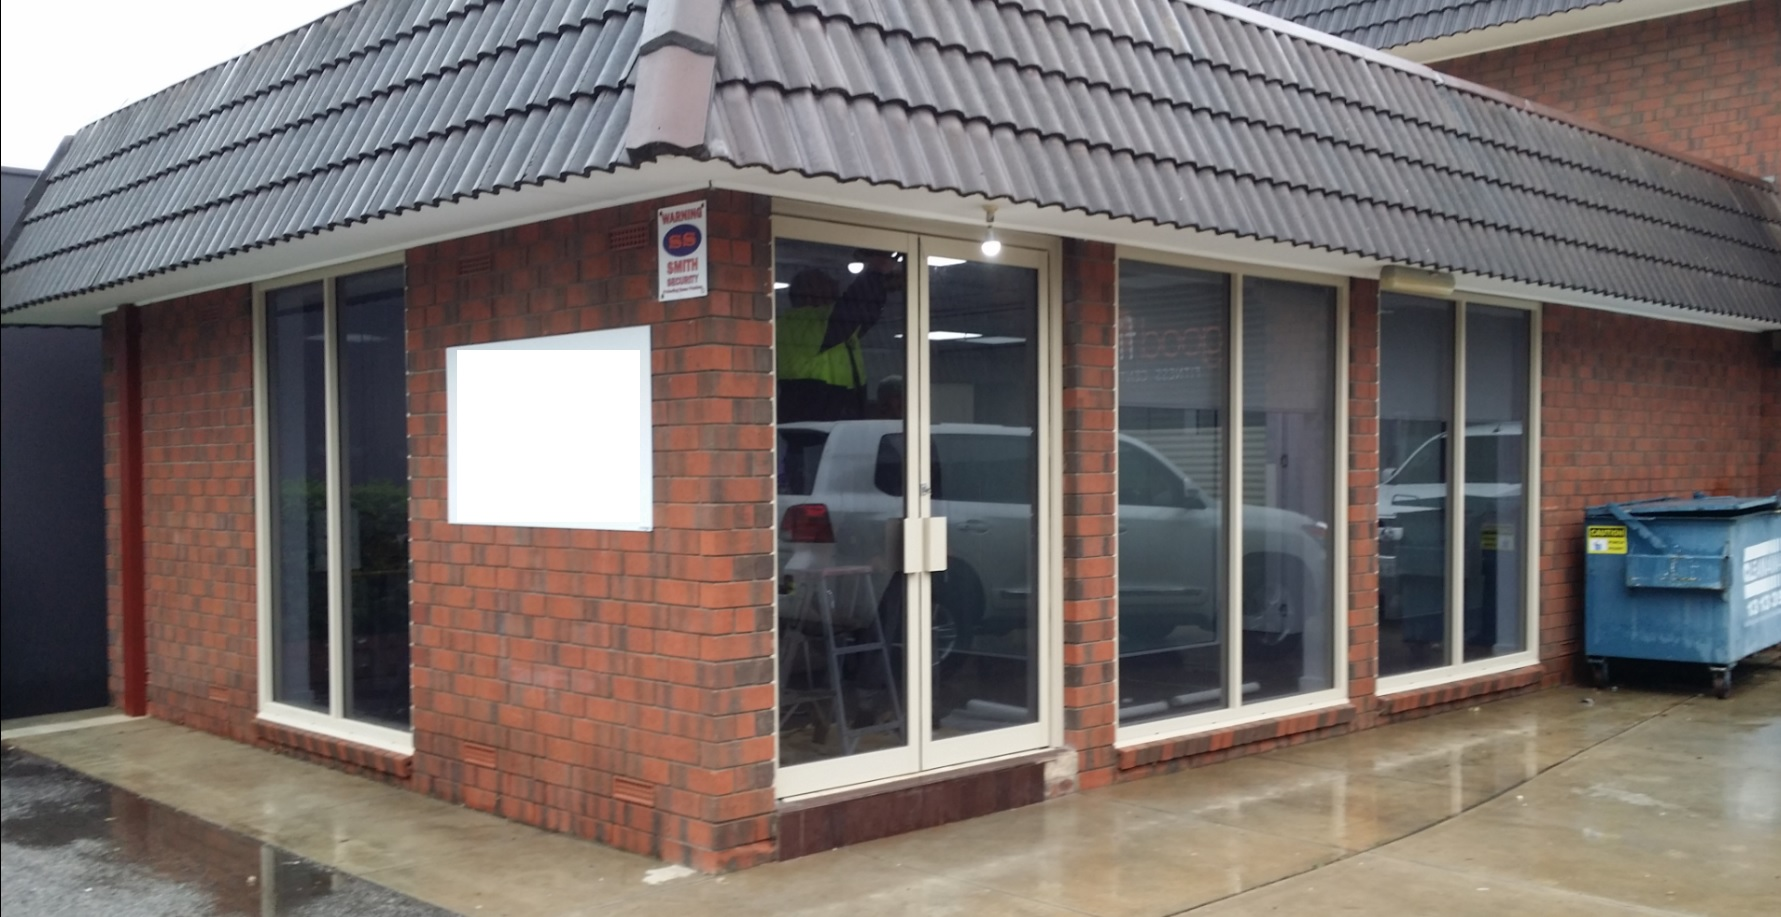 Commercial Fixed Windows : Commercial fixed lites with double pivot door the window man